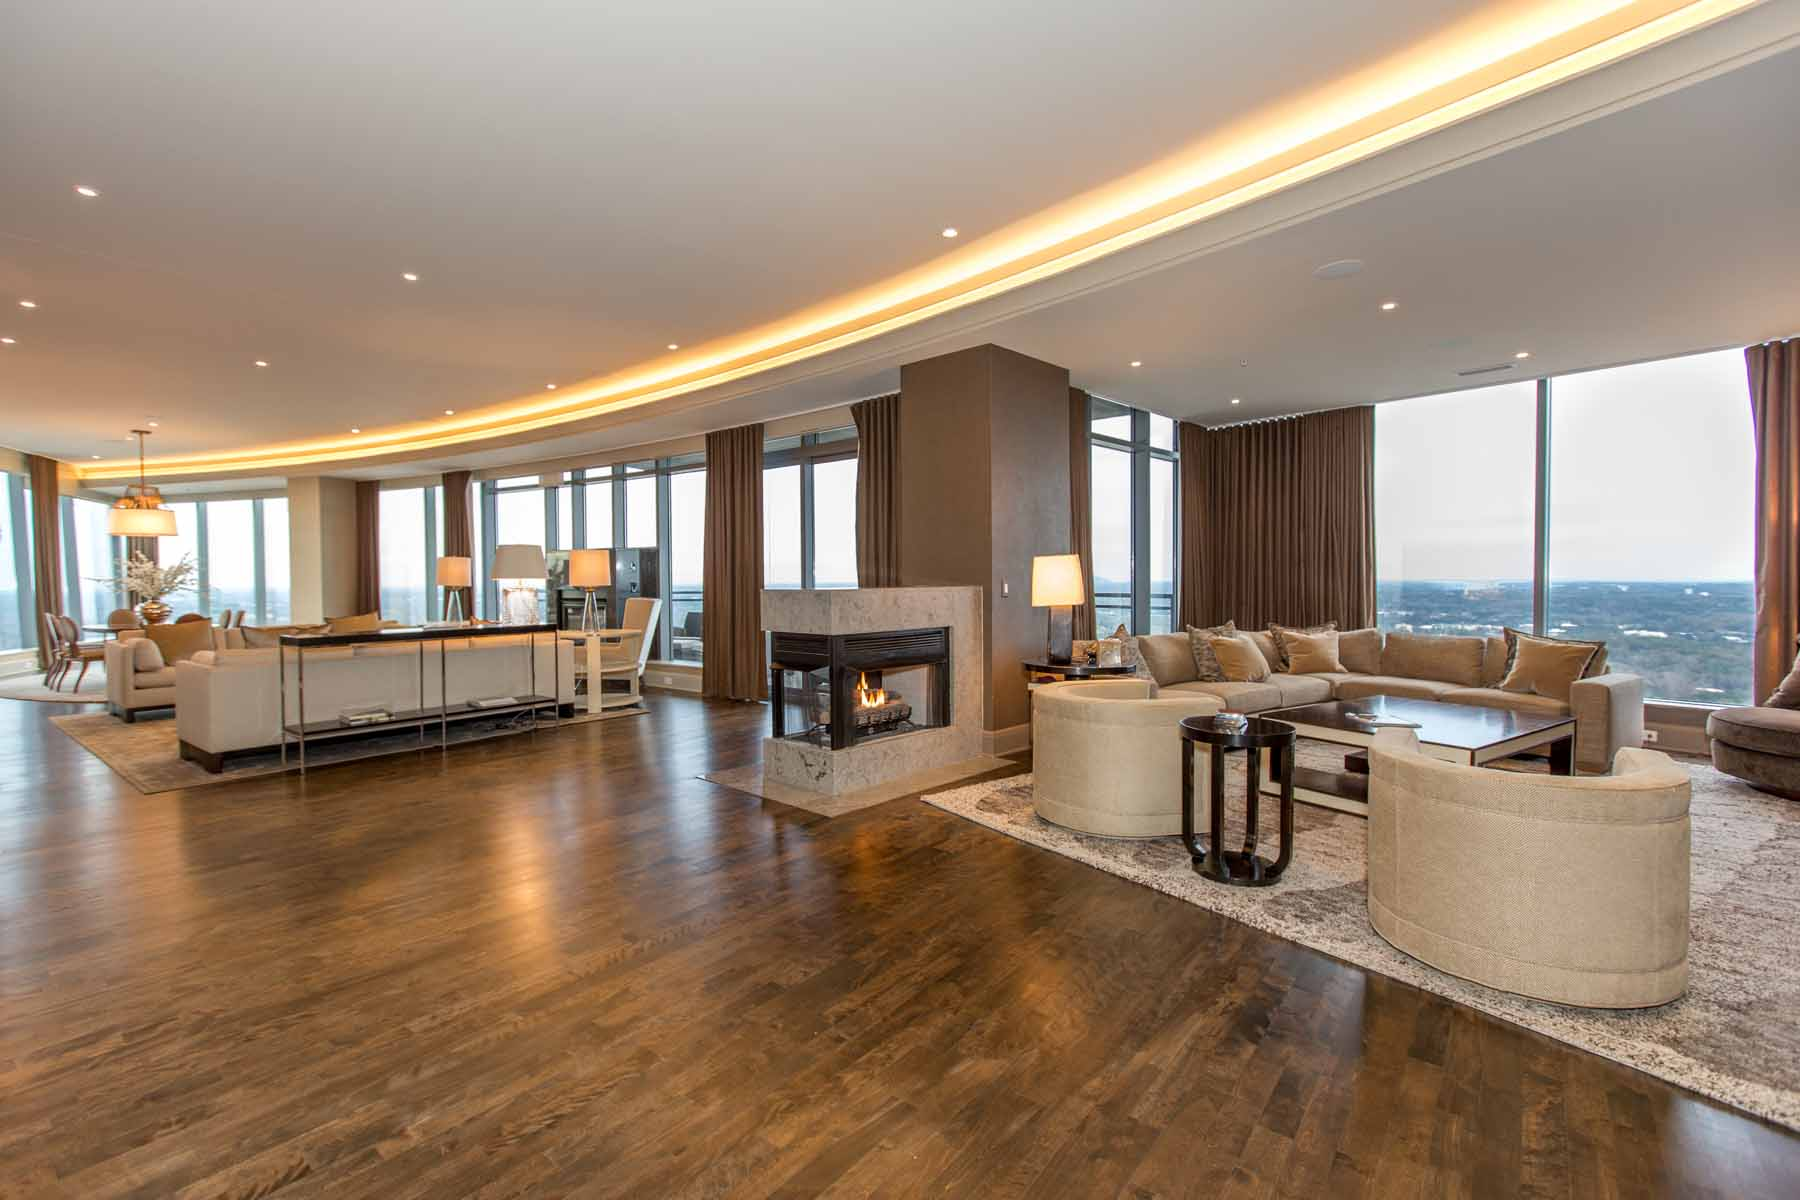 Copropriété pour l Vente à Sovereign's LARGEST plan boasting panoramic views! 3344 Peachtree Road NE #4303 Atlanta, Georgia 30326 États-Unis